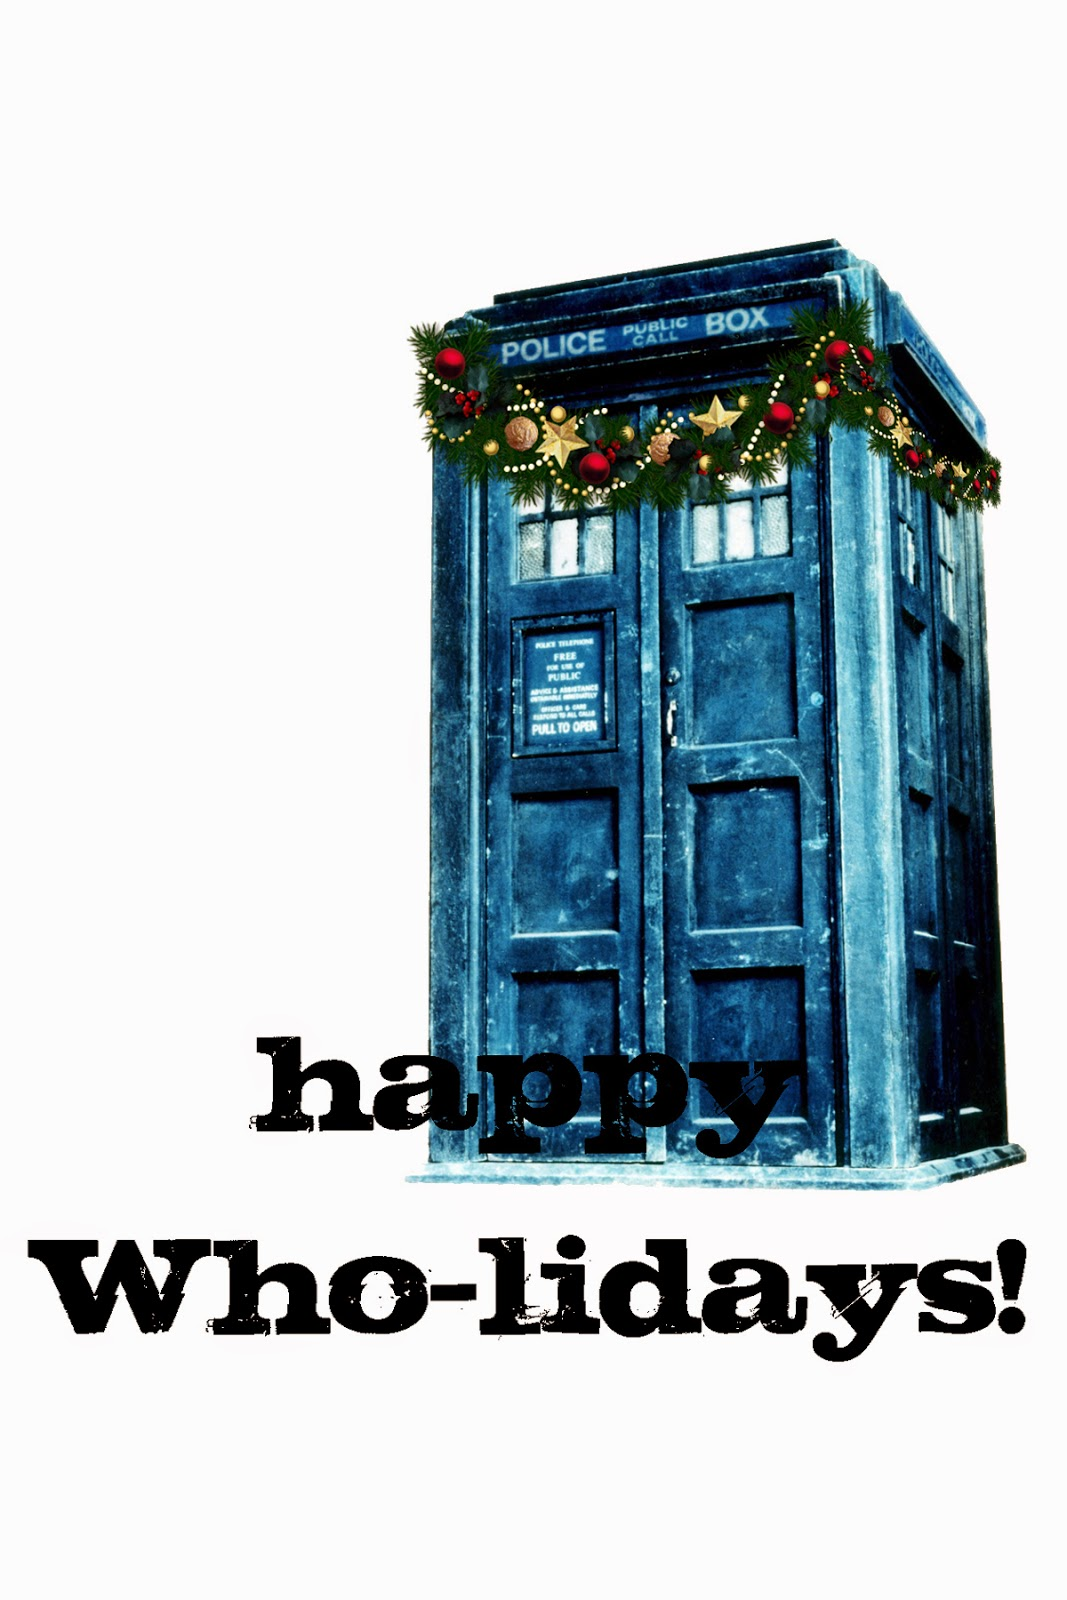 http://www.doodlecraftblog.com/2013/08/doctor-who-inspired-christmas-card.html